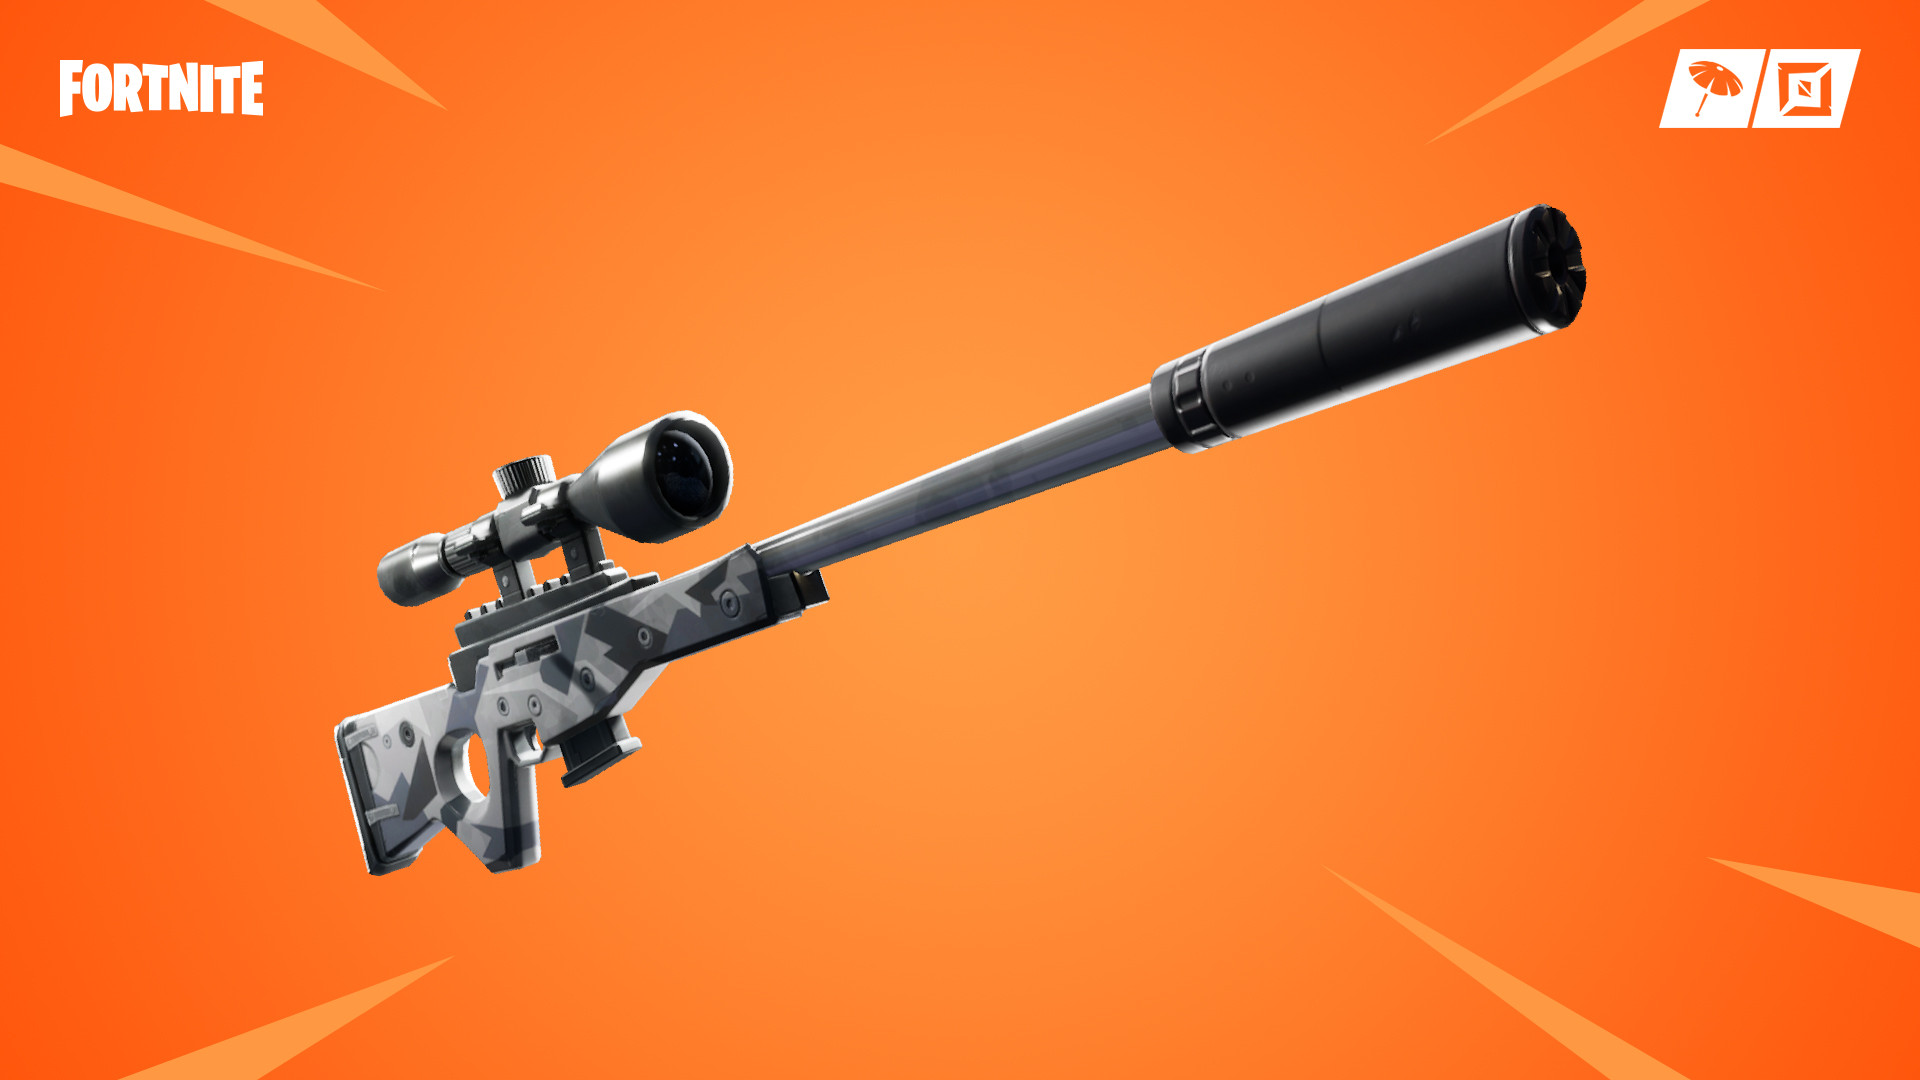 Suppressed Sniper Rifle | Fortnite - zilliongamer